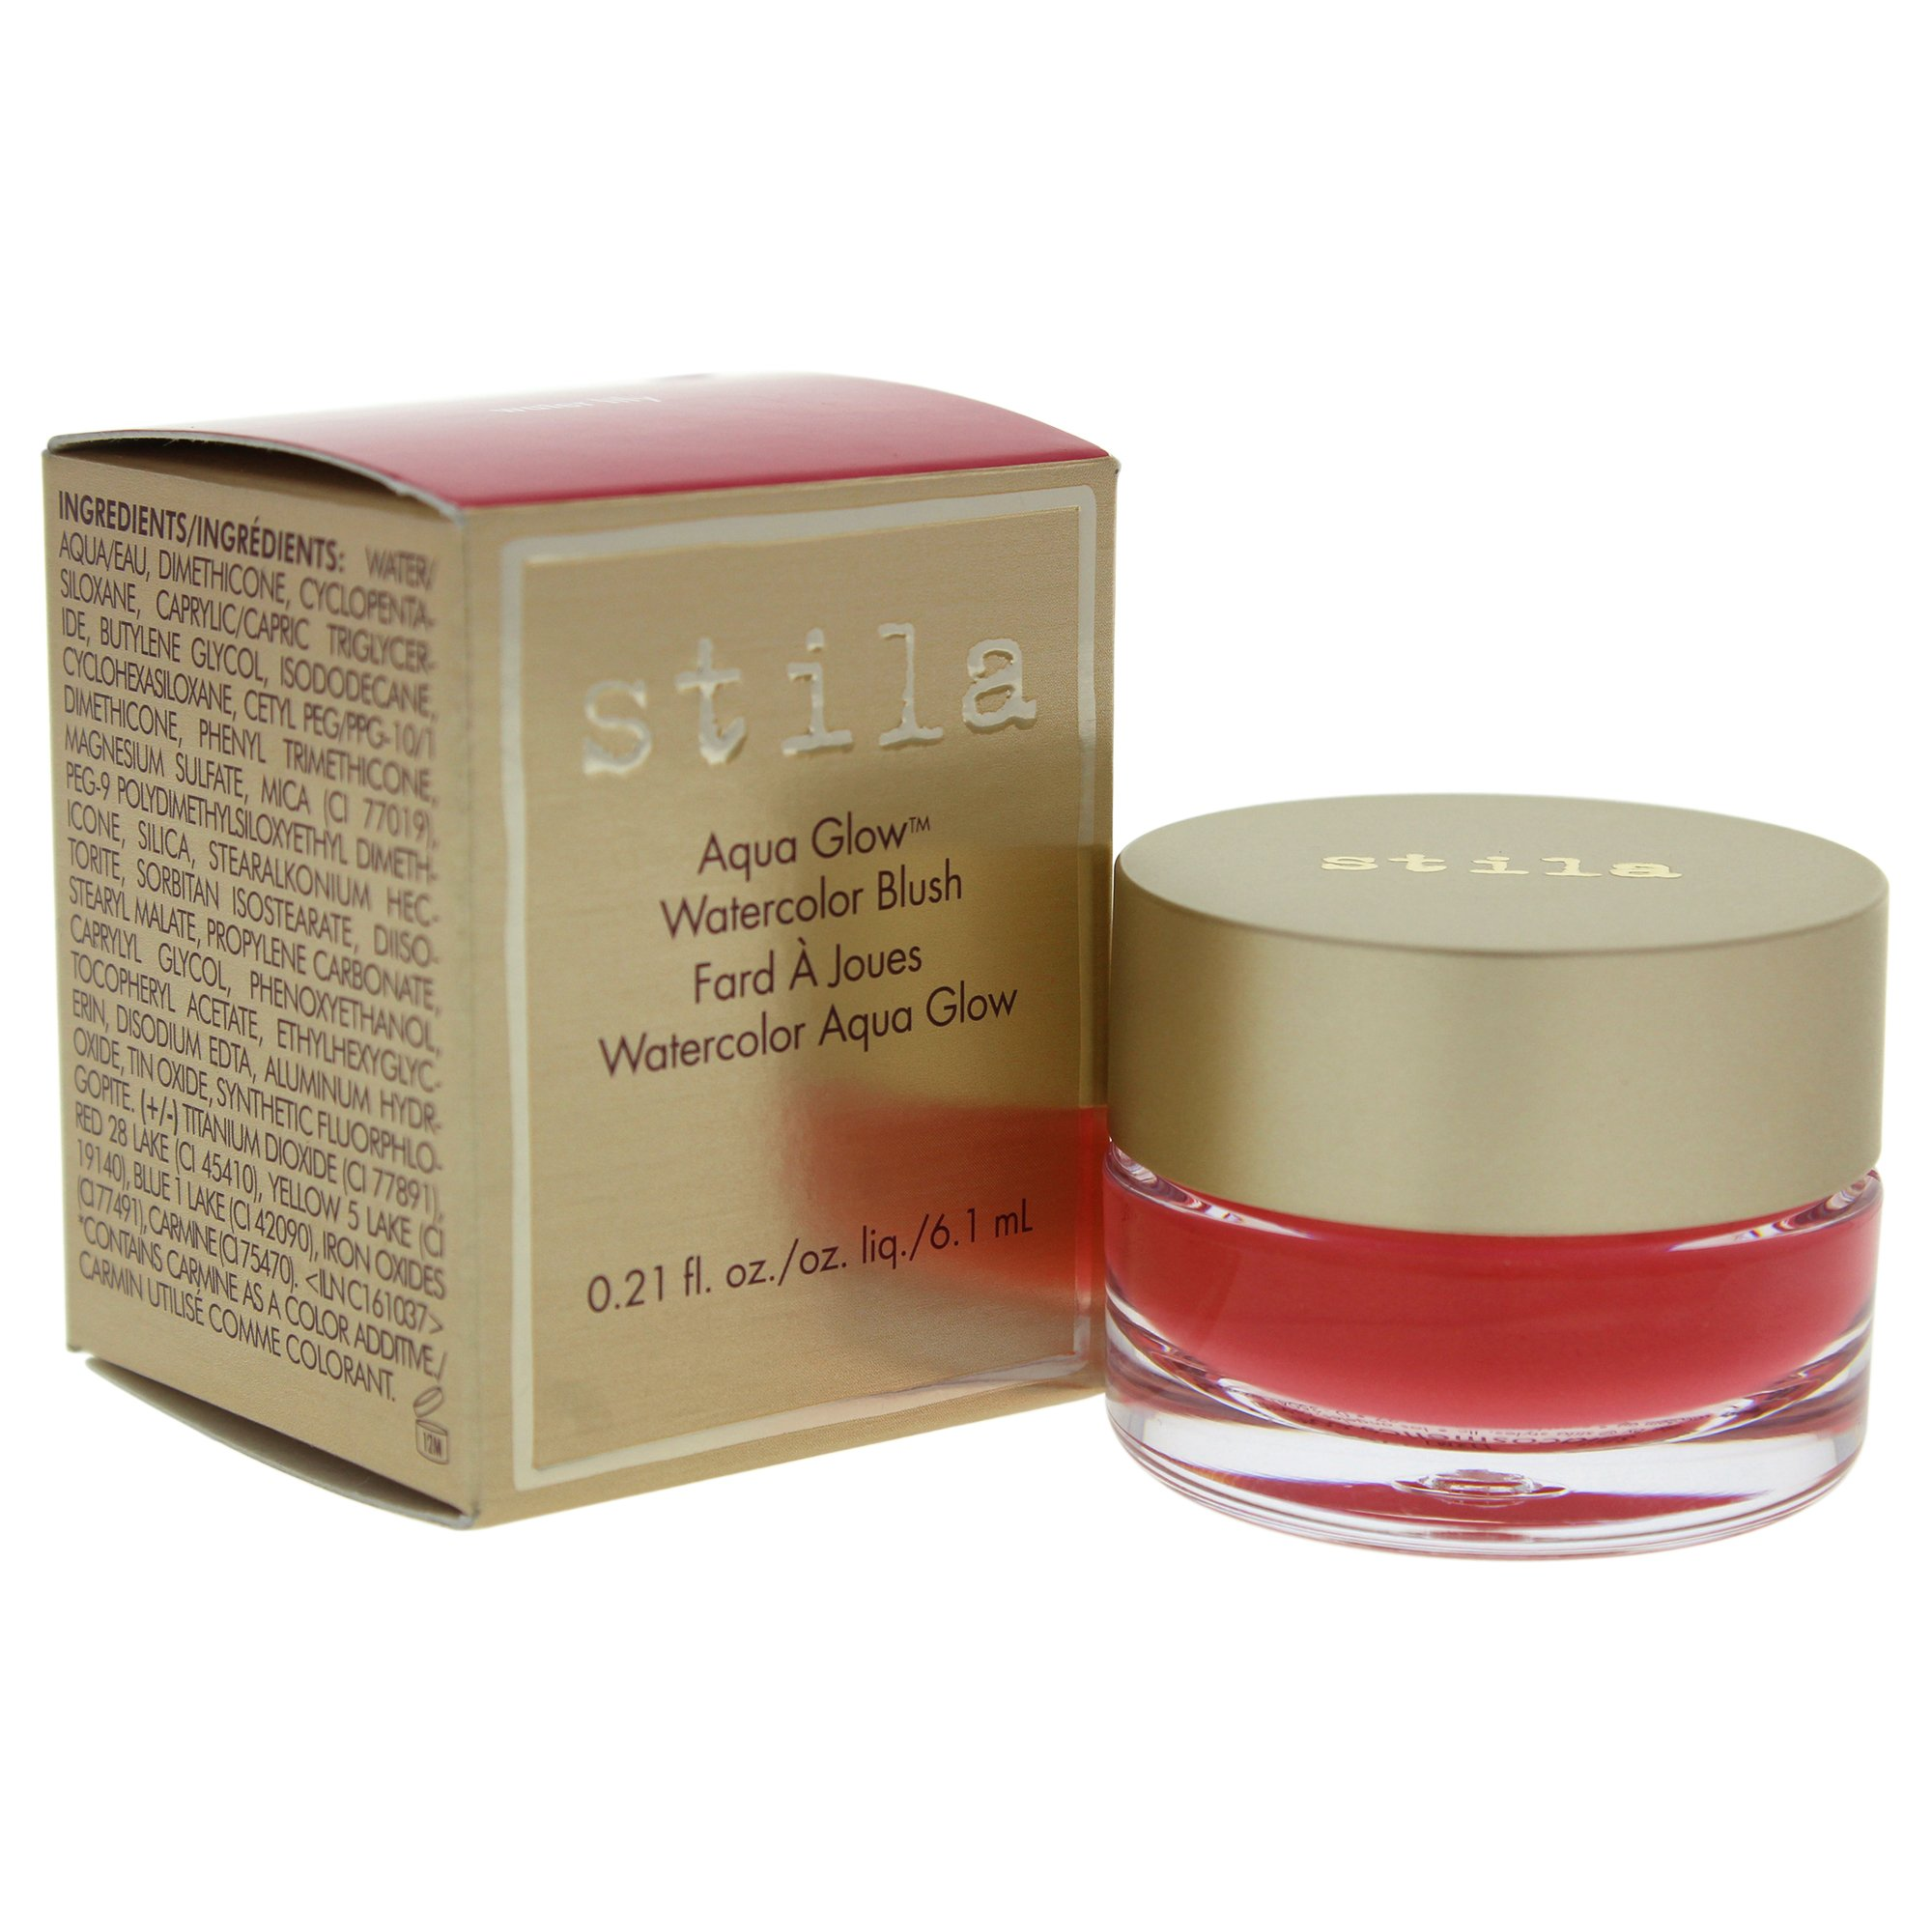 Stila - stila Aqua Glow Watercolor Blush